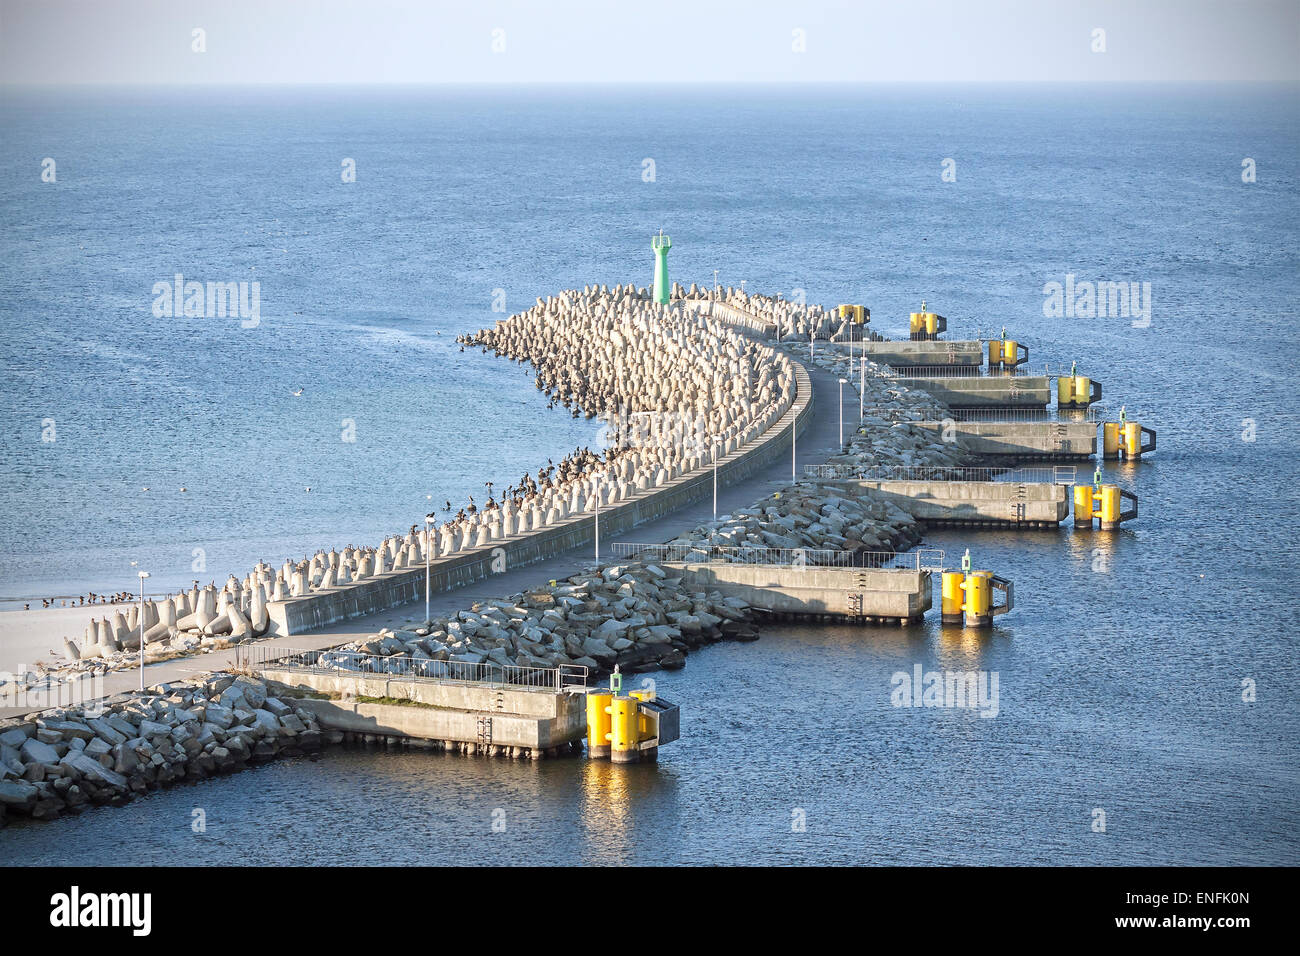 Port entrance and infrastructure in Kolobrzeg, Poland. - Stock Image